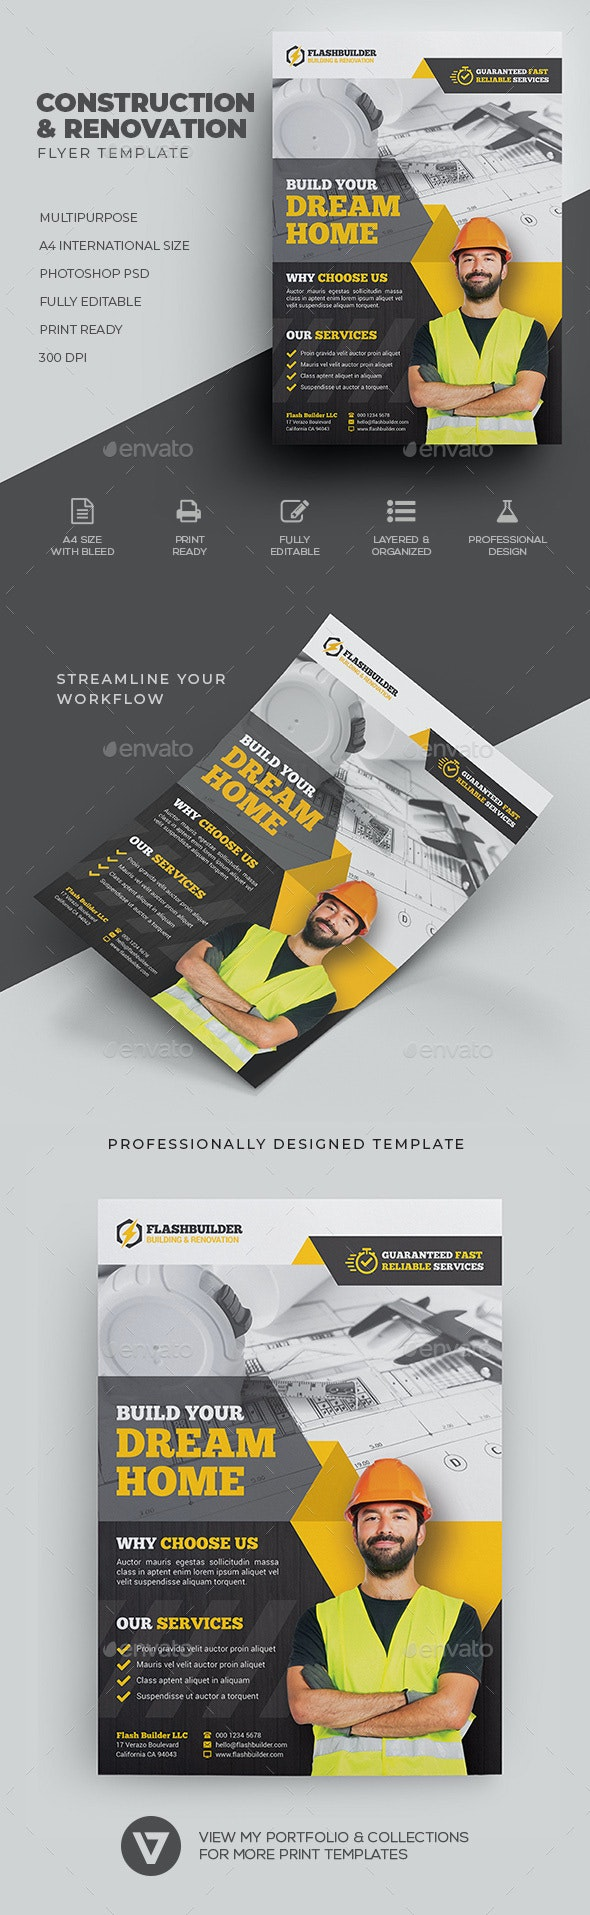 Construction & Renovation Flyer - Corporate Flyers